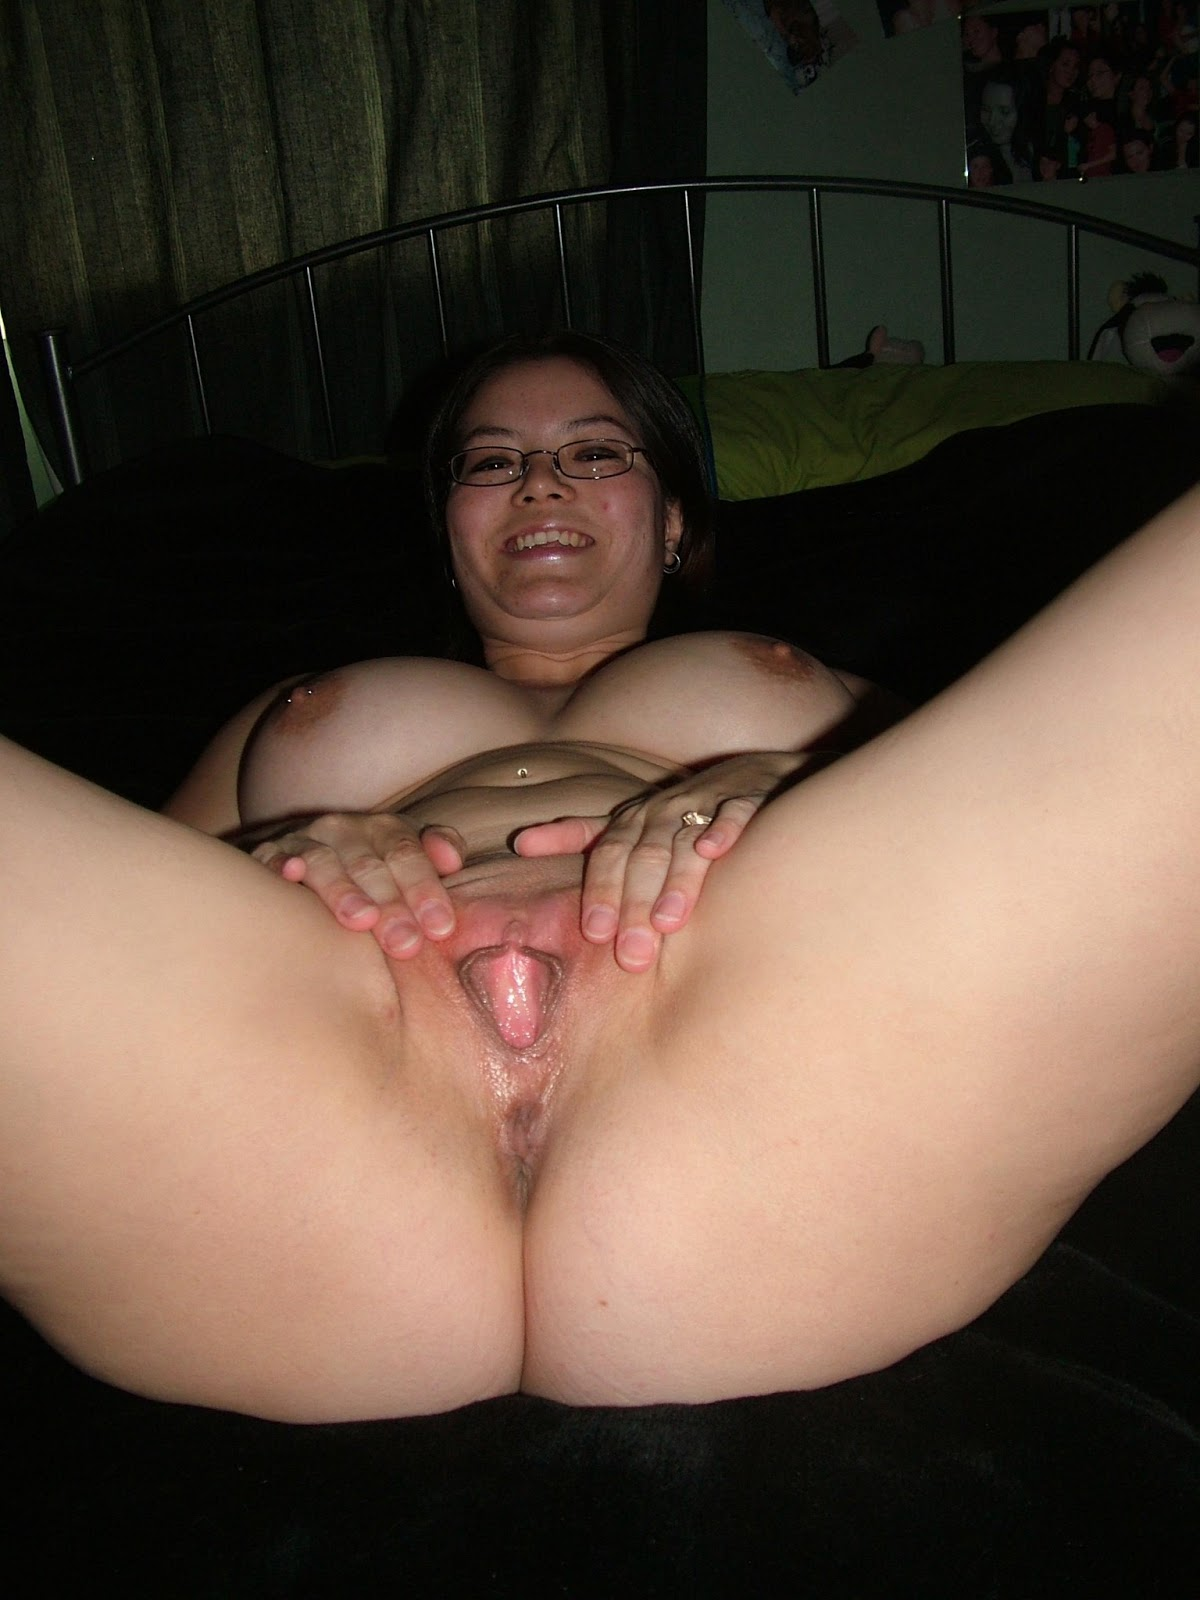 Knows it. mature latina pussy pictures opinion